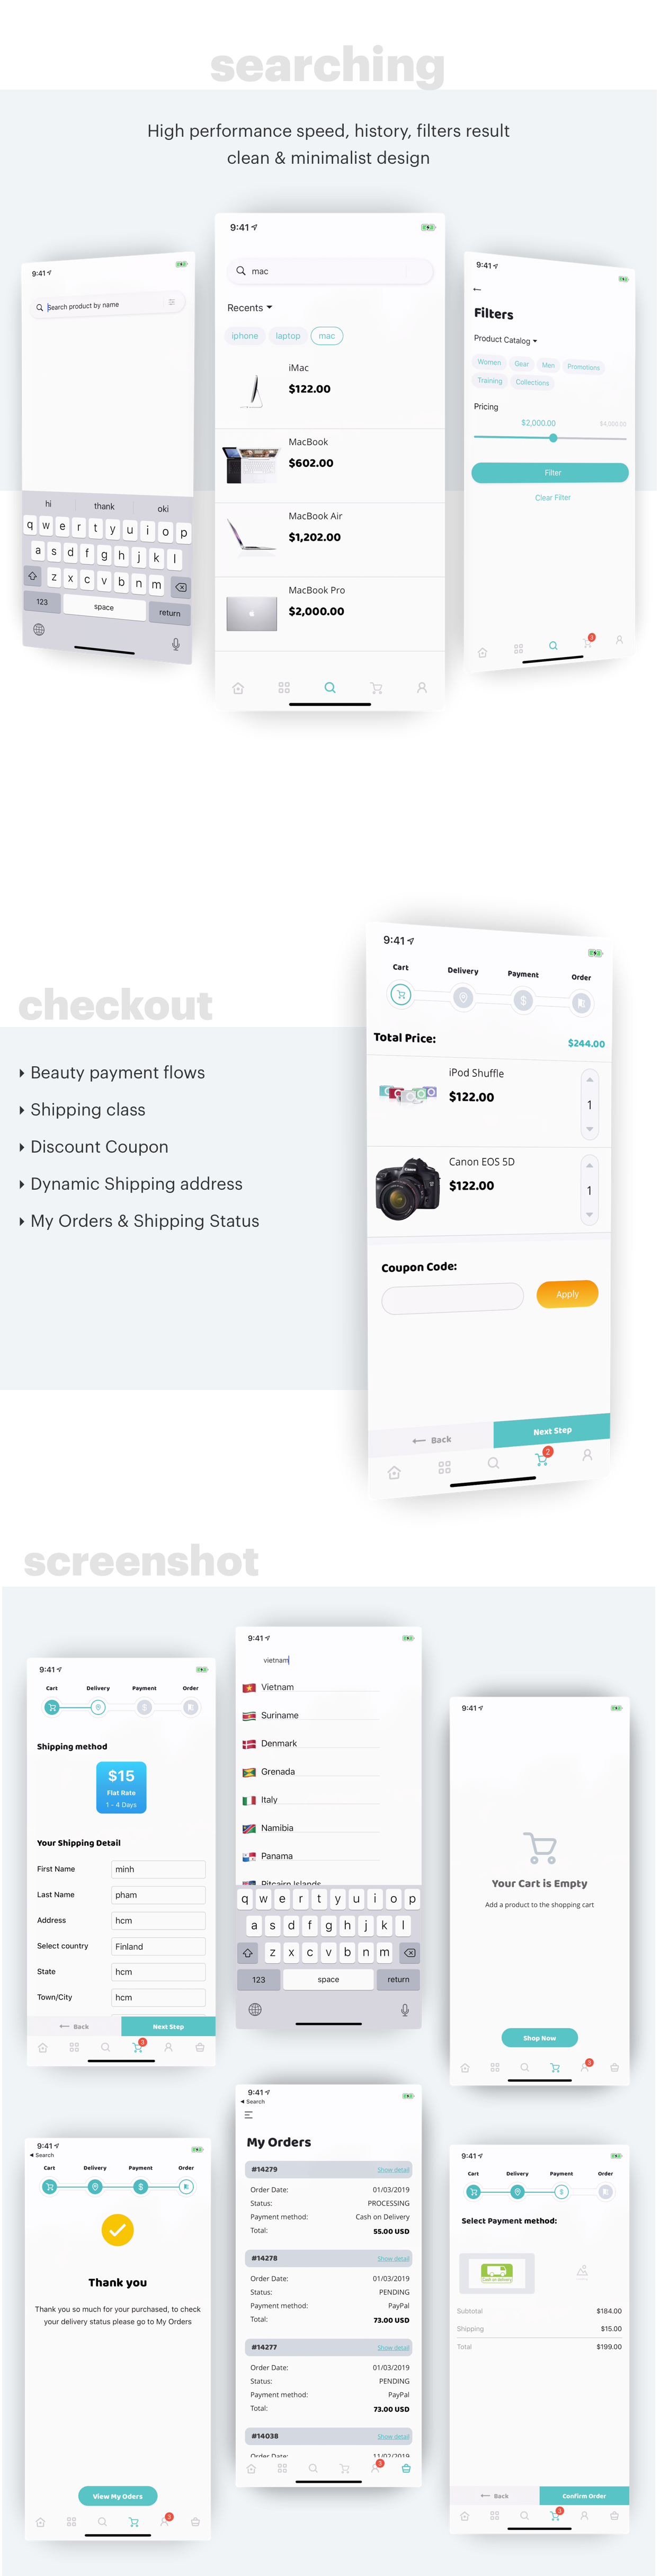 MStore Opencart - the complete react native e-commerce app (Expo version) - 4